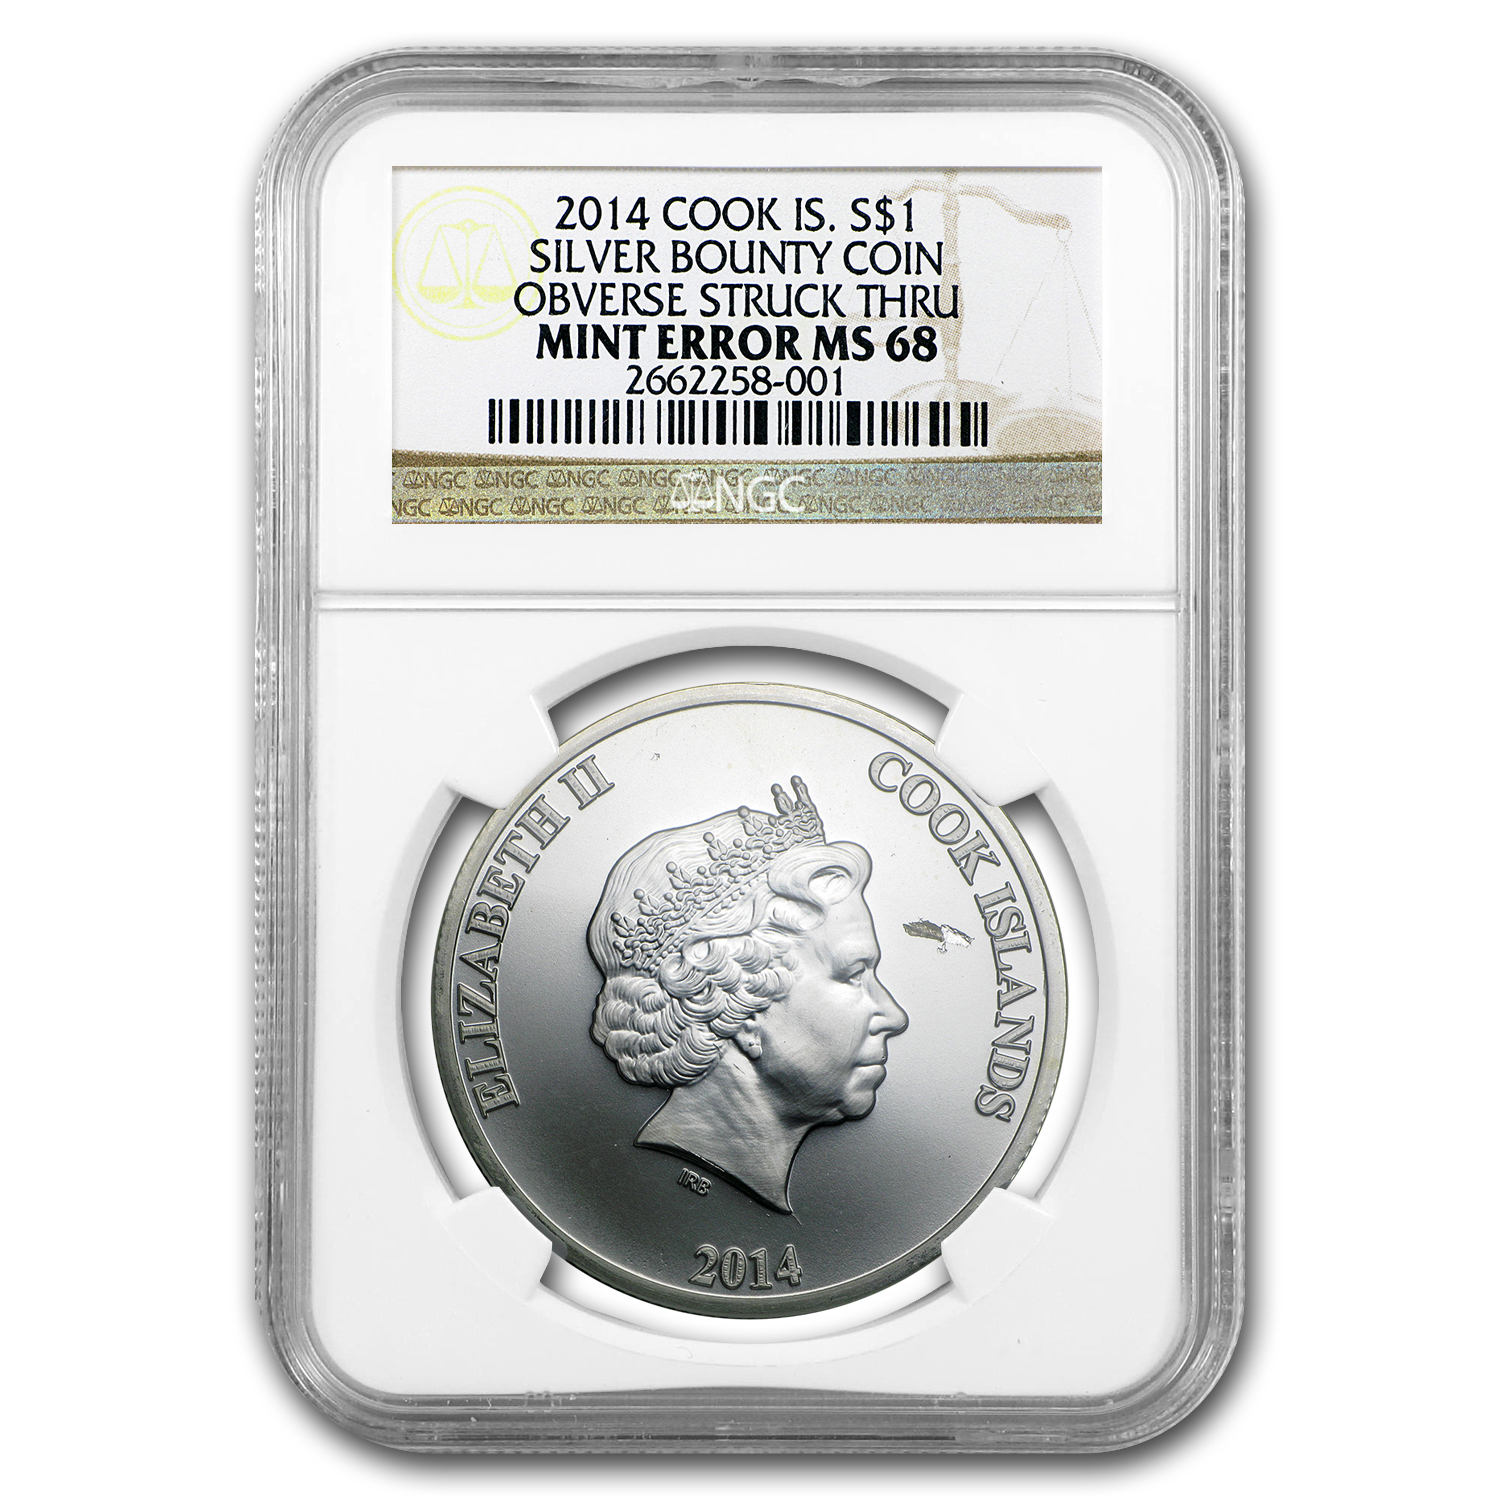 2014 1 oz Silver Bounty Obv Stuck Thru NGC MS-68 (Mint Error)